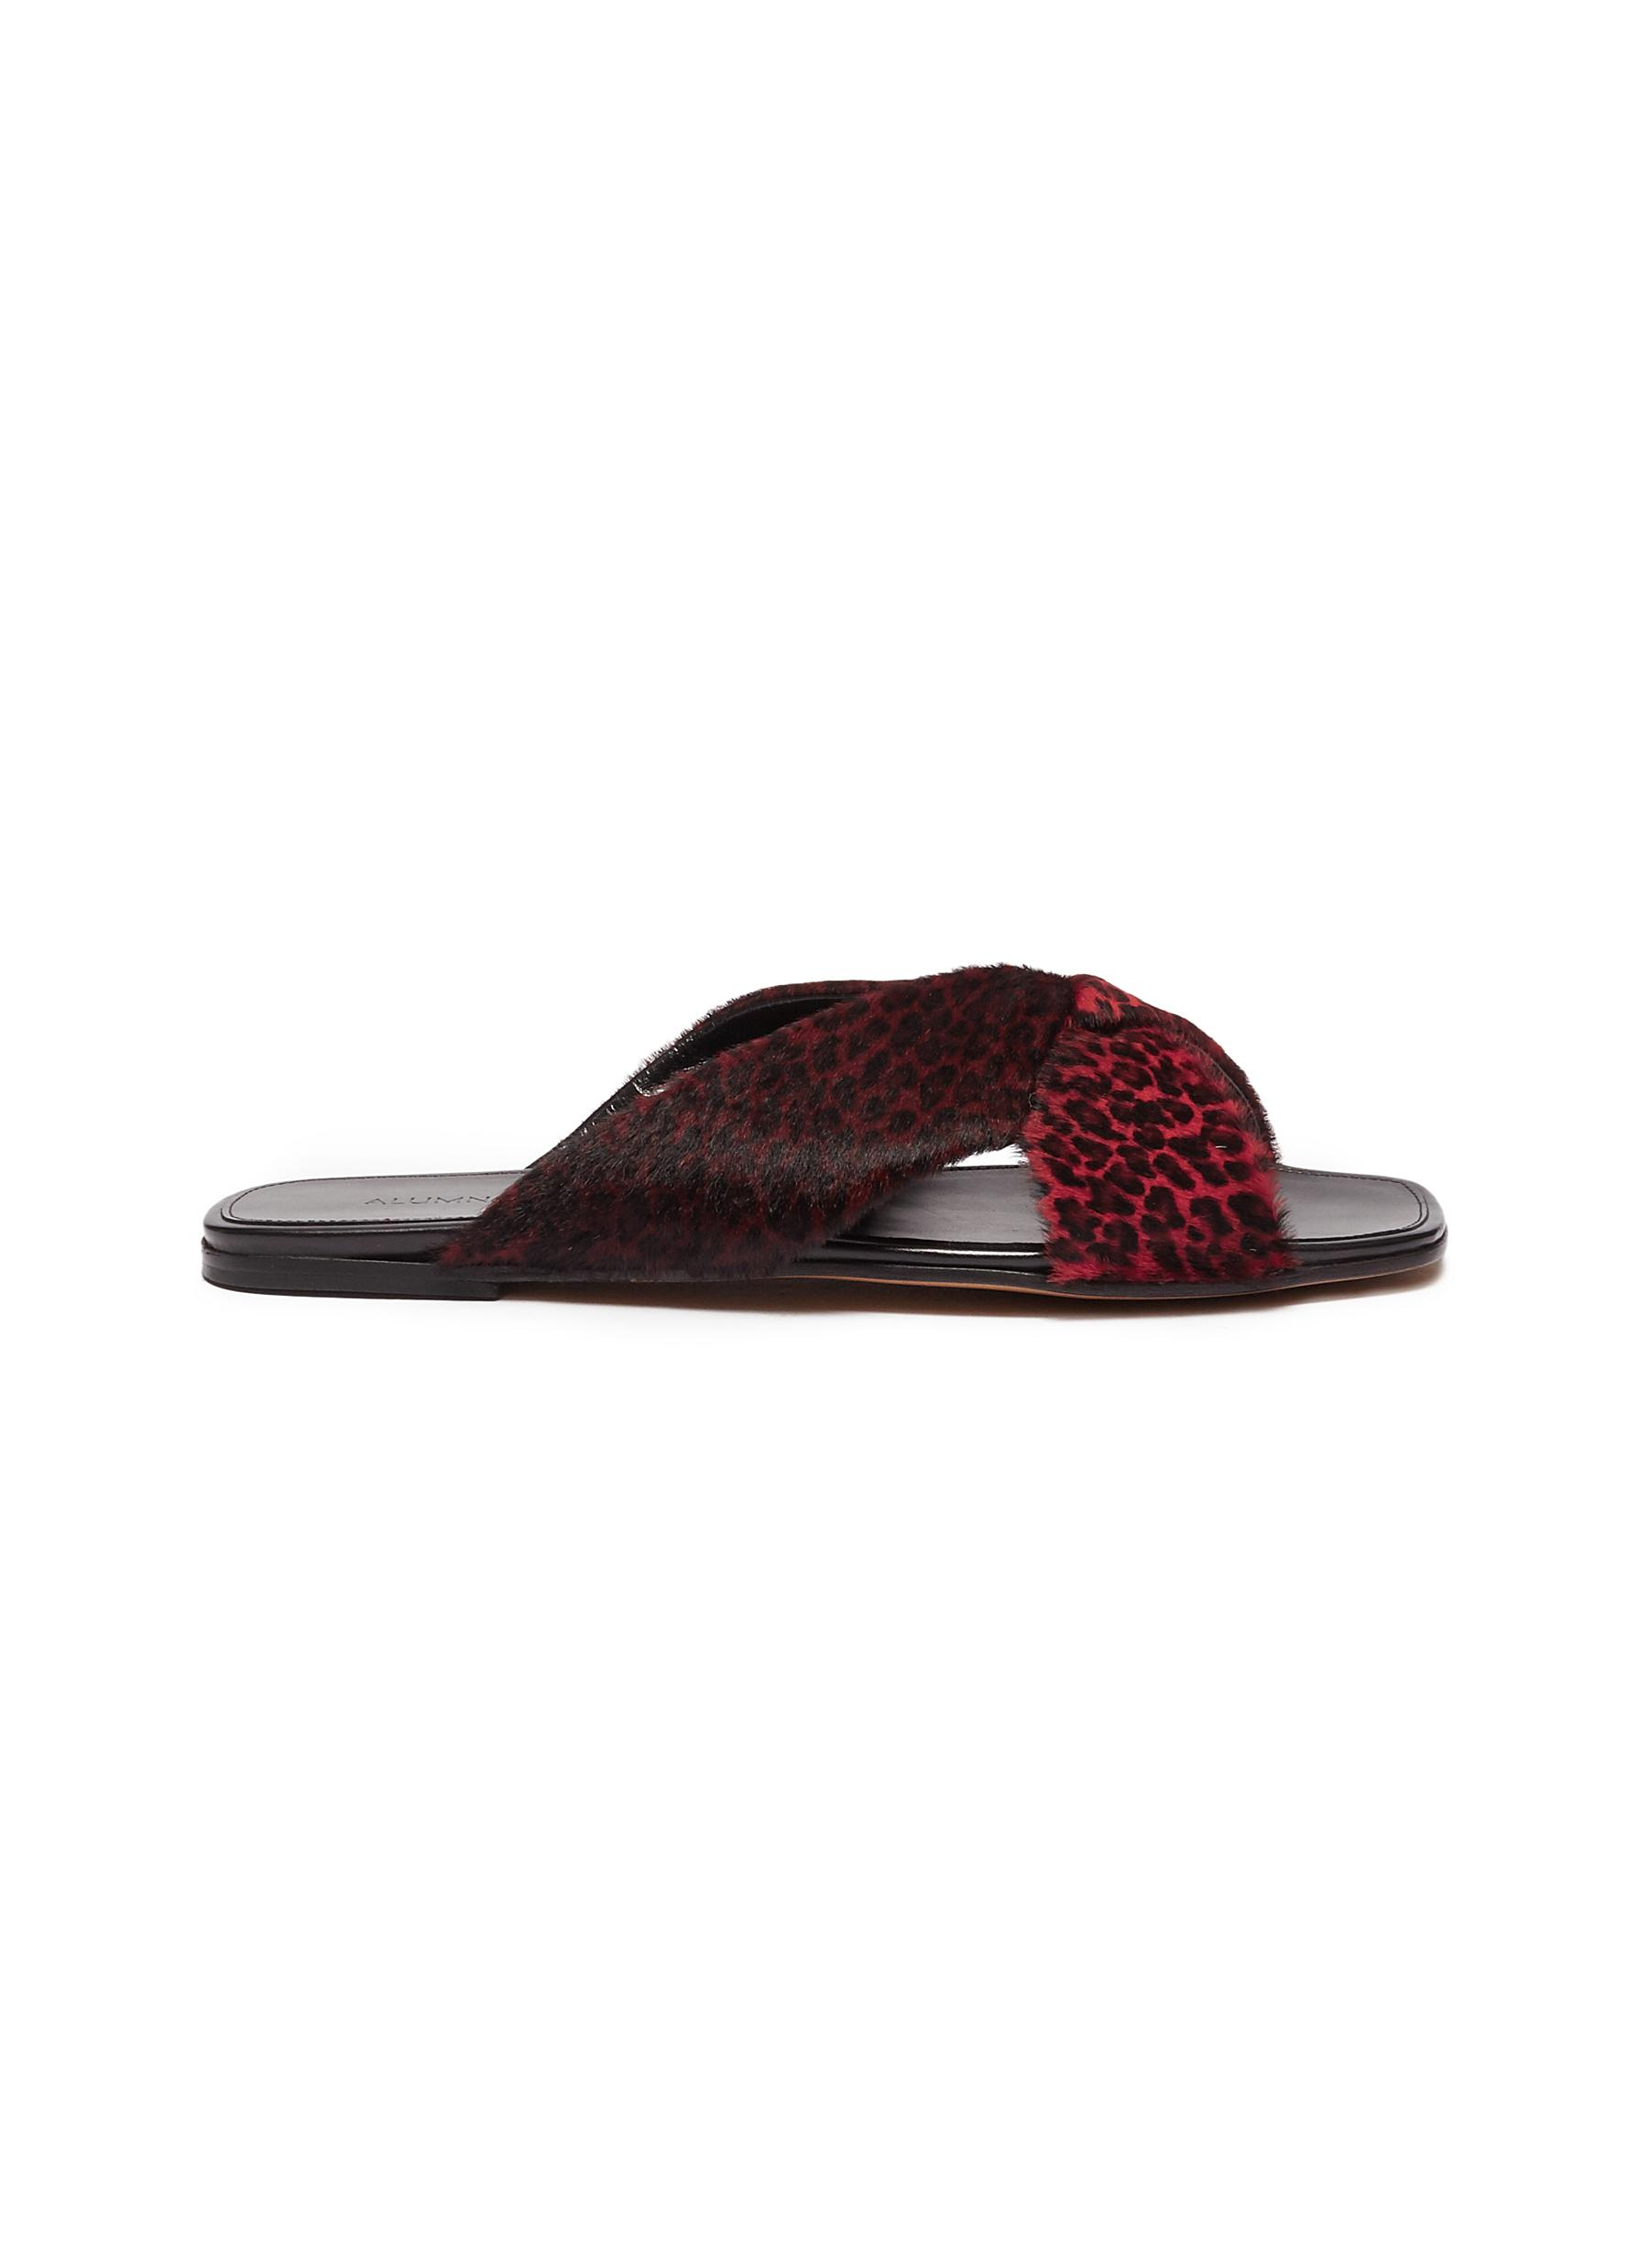 X-Slide leopard print calfhair slide sandals by Alumnae